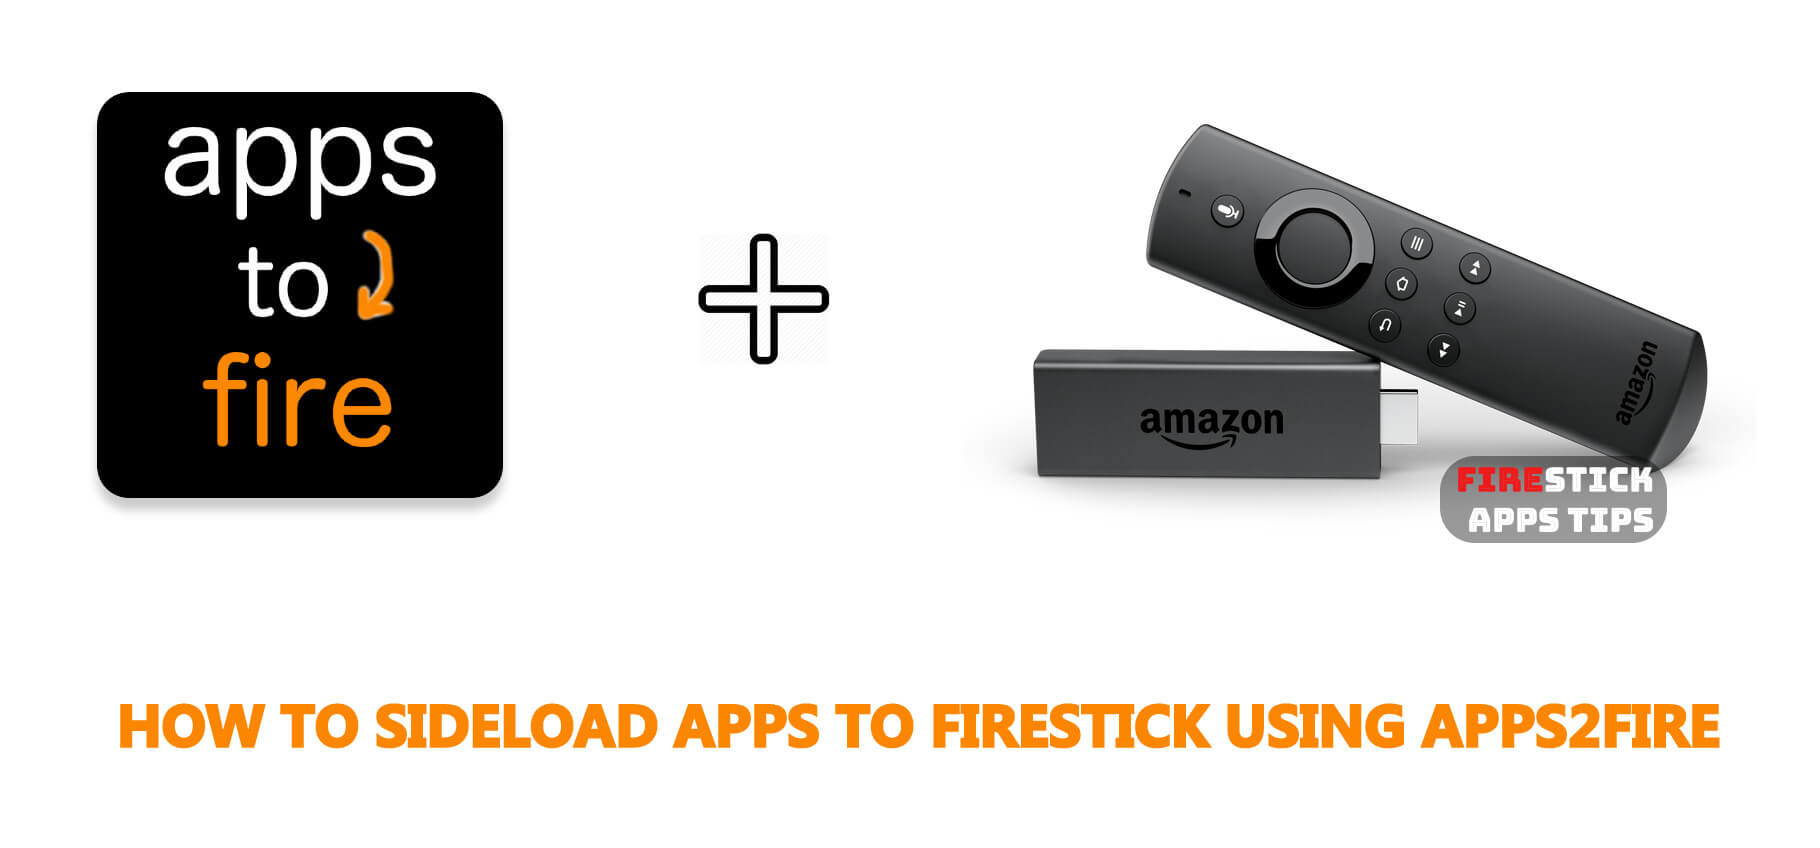 How to Sideload Apps to Firestick using Apps2Fire [2021]